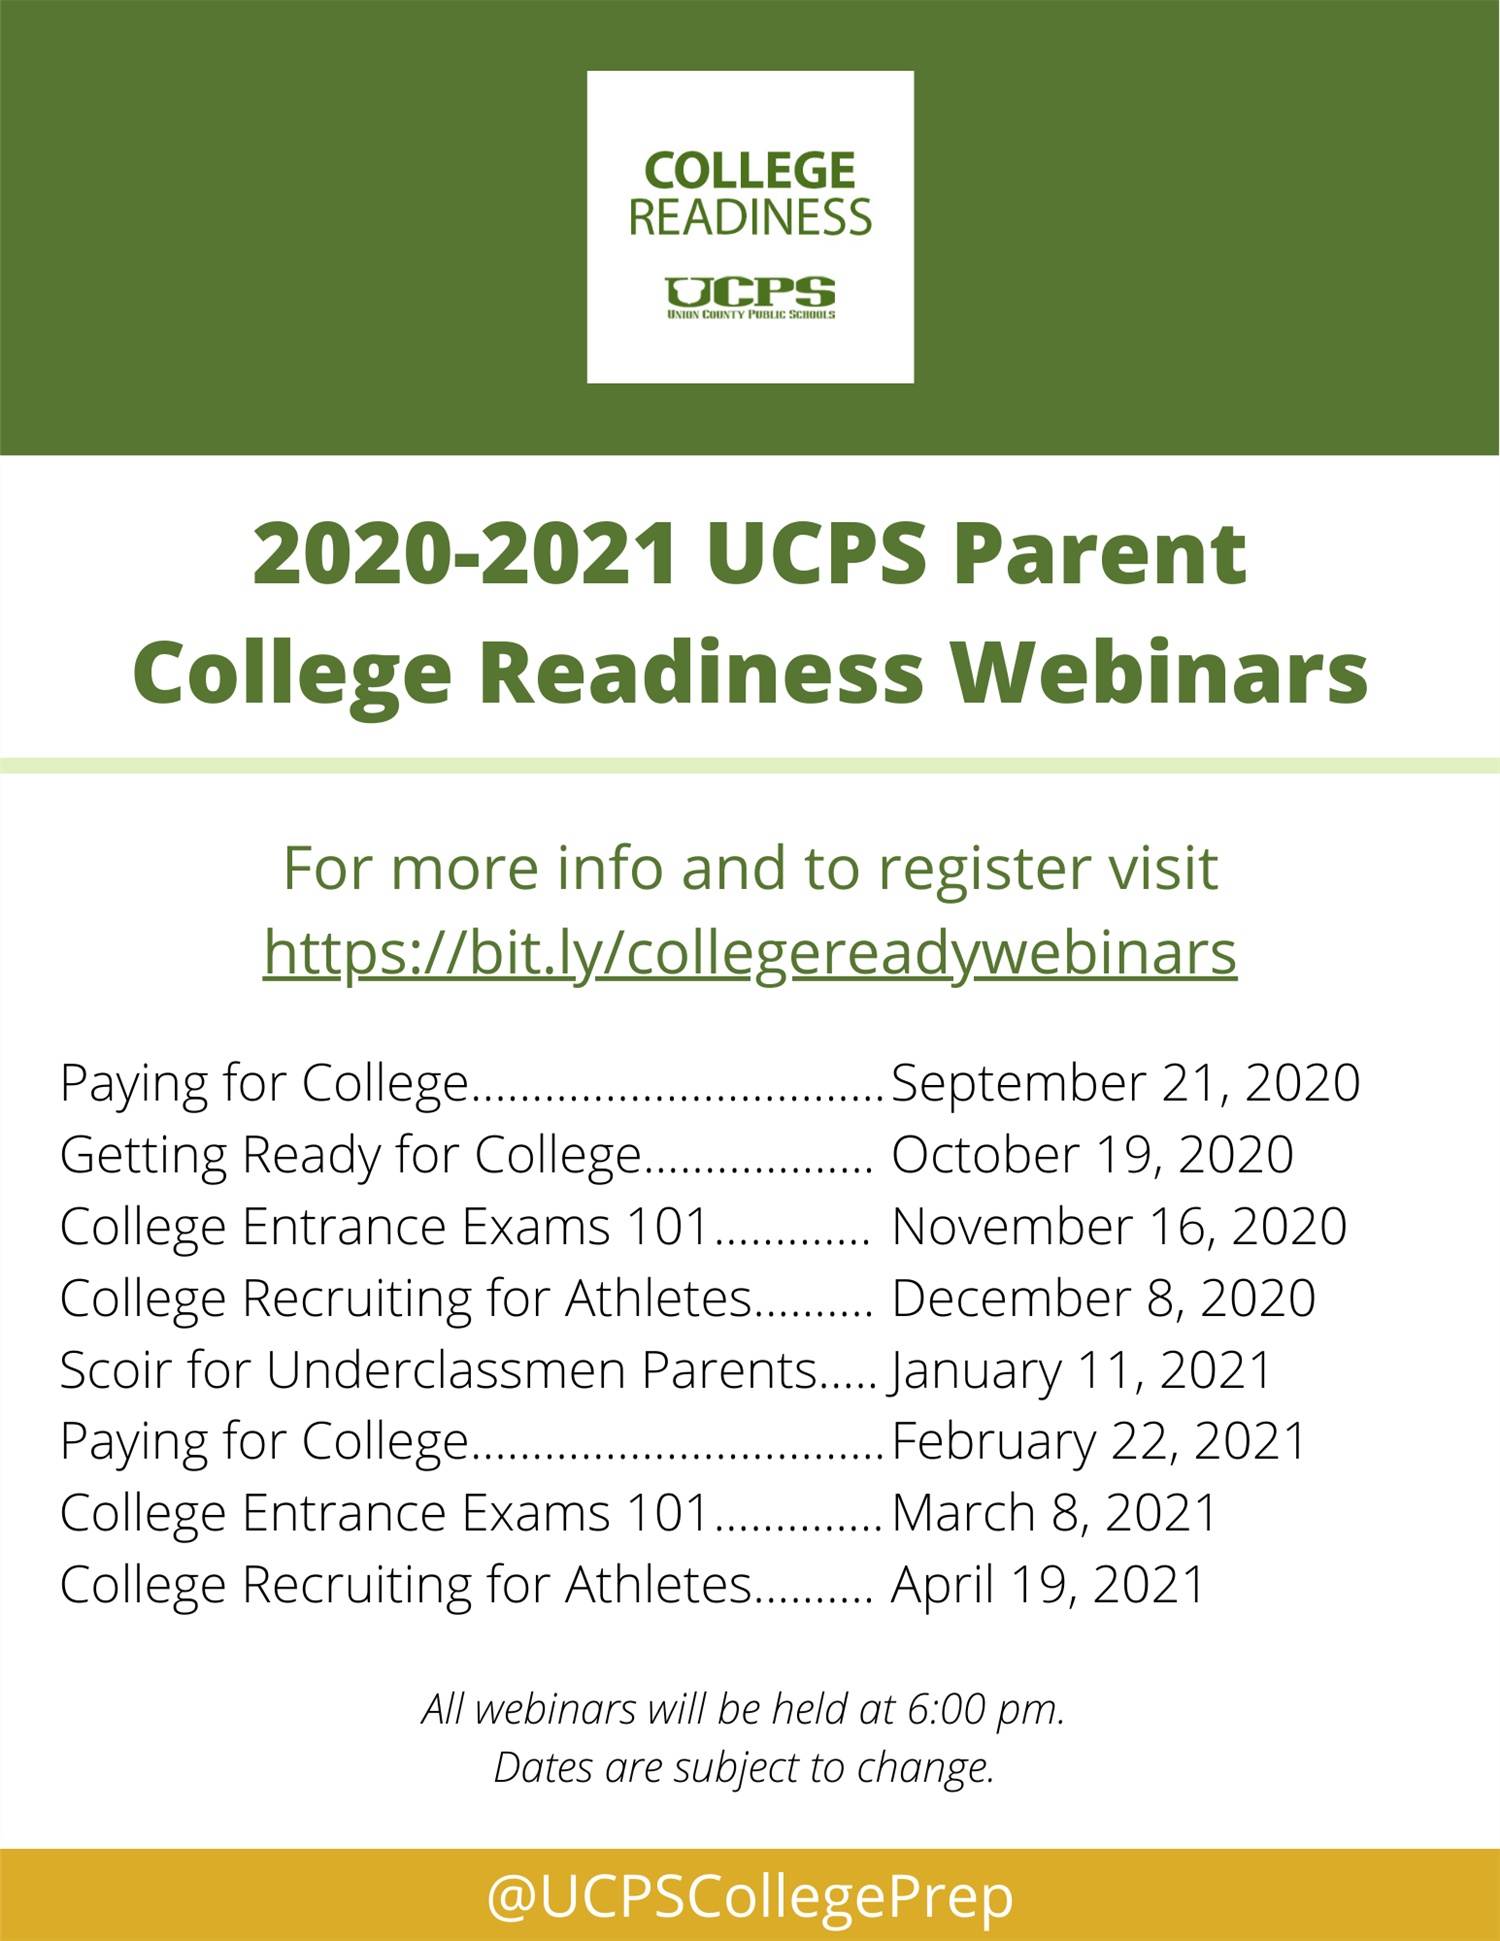 2020-2021 Parent College Readiness Webinar Series